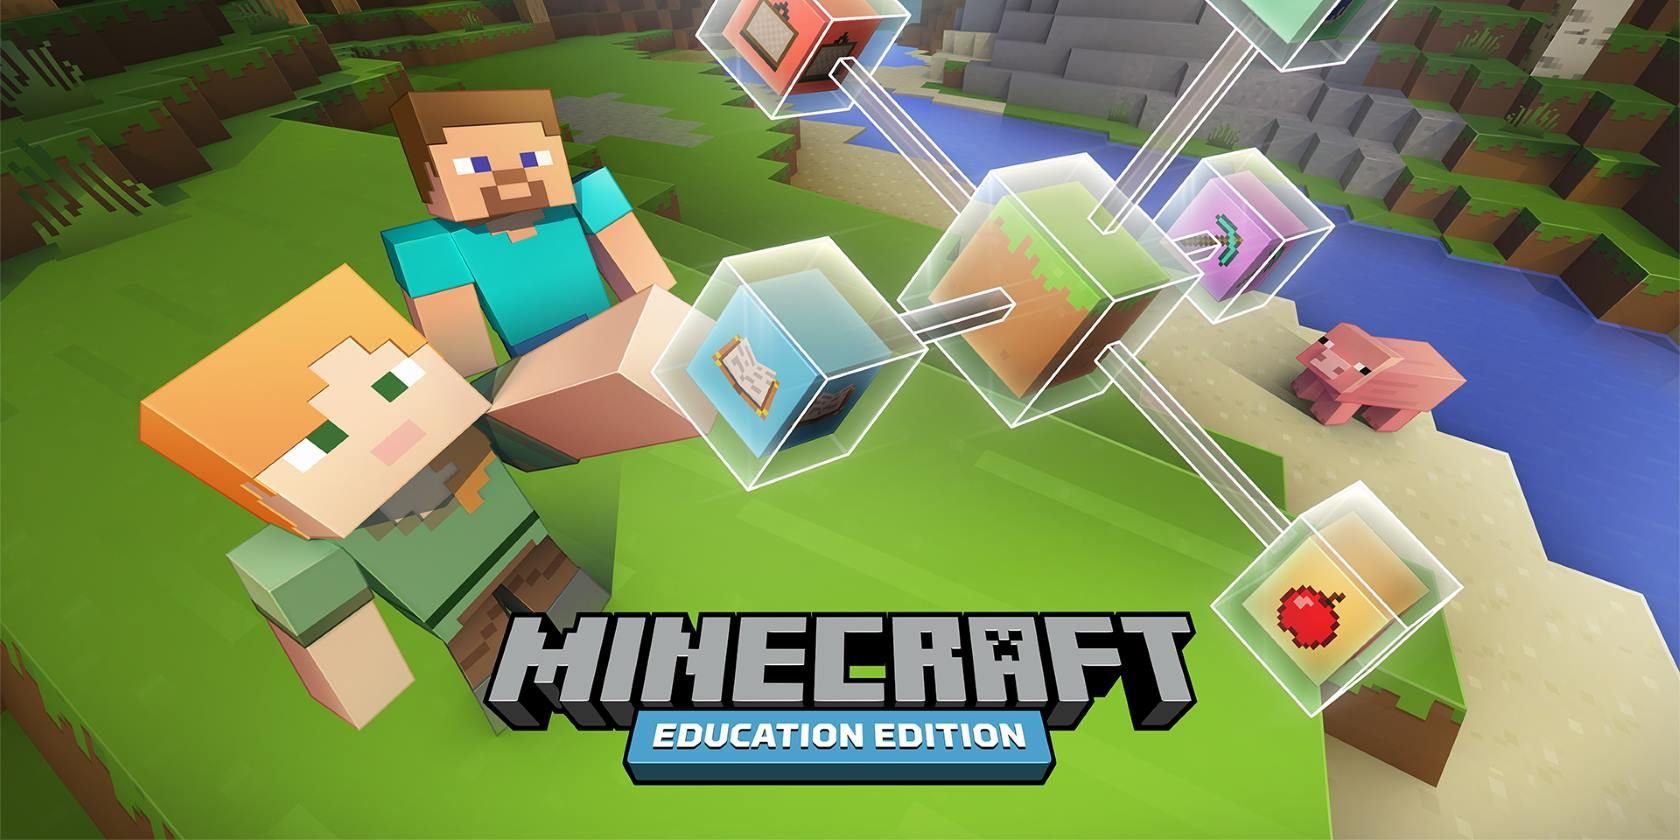 The official Minecraft Education Edition logo